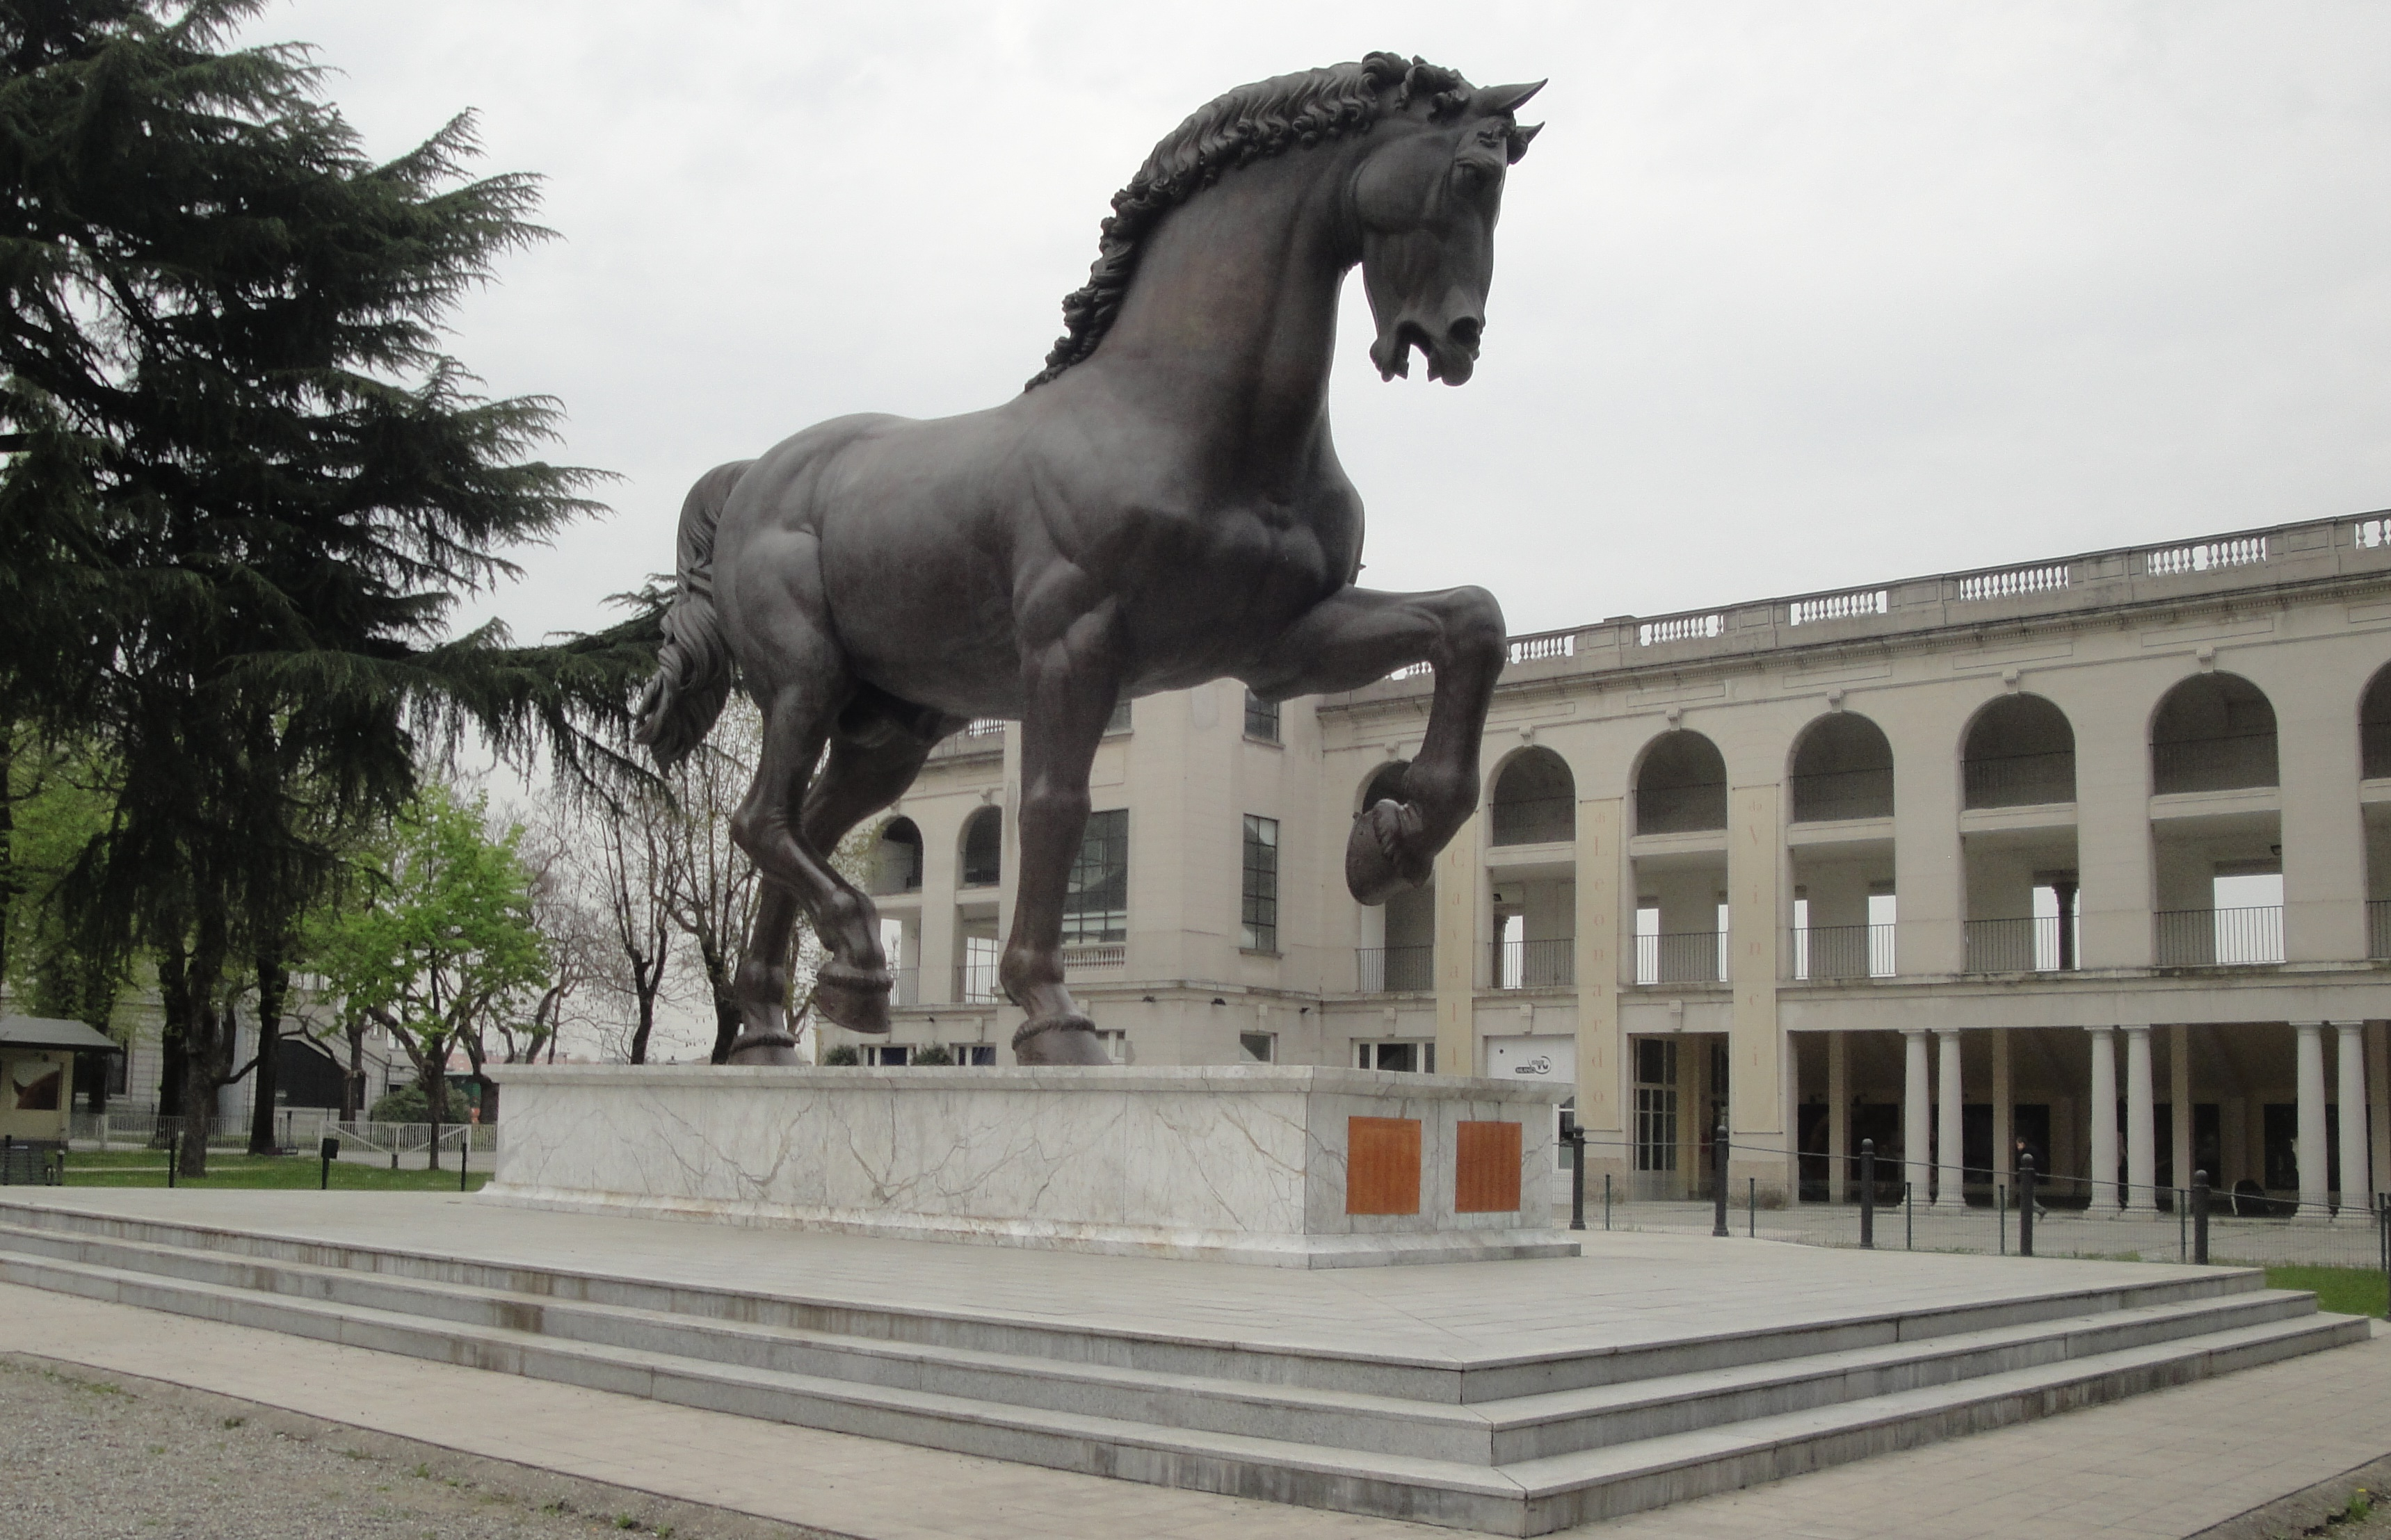 IL CAVALLO LEONARDESCO ALL'EXPO 2015